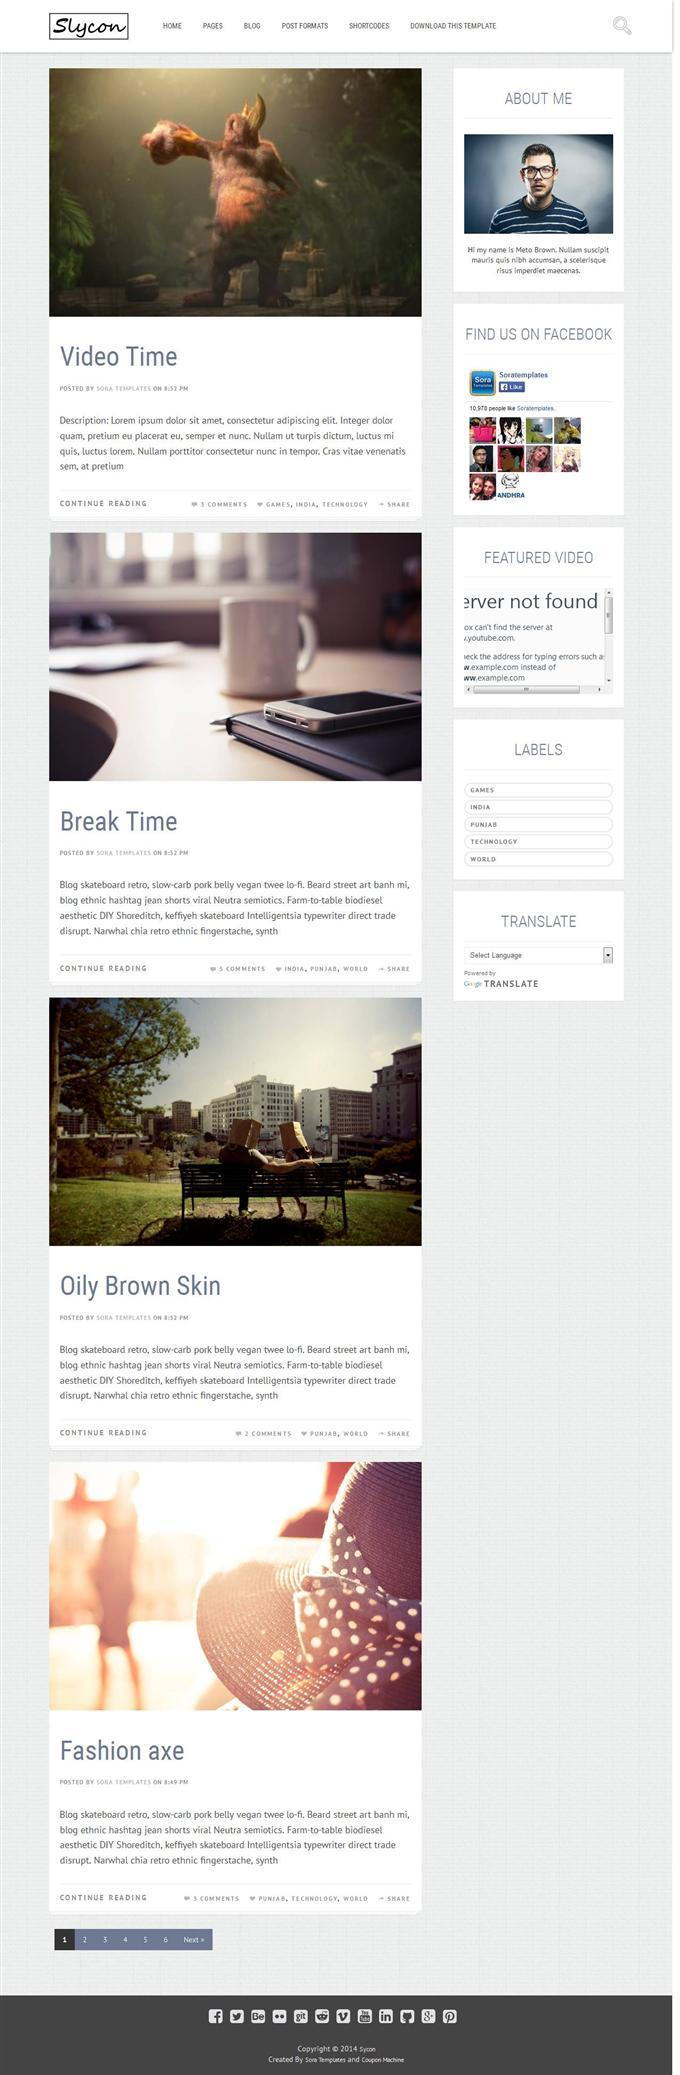 sycon_personal_blog_blogger_template